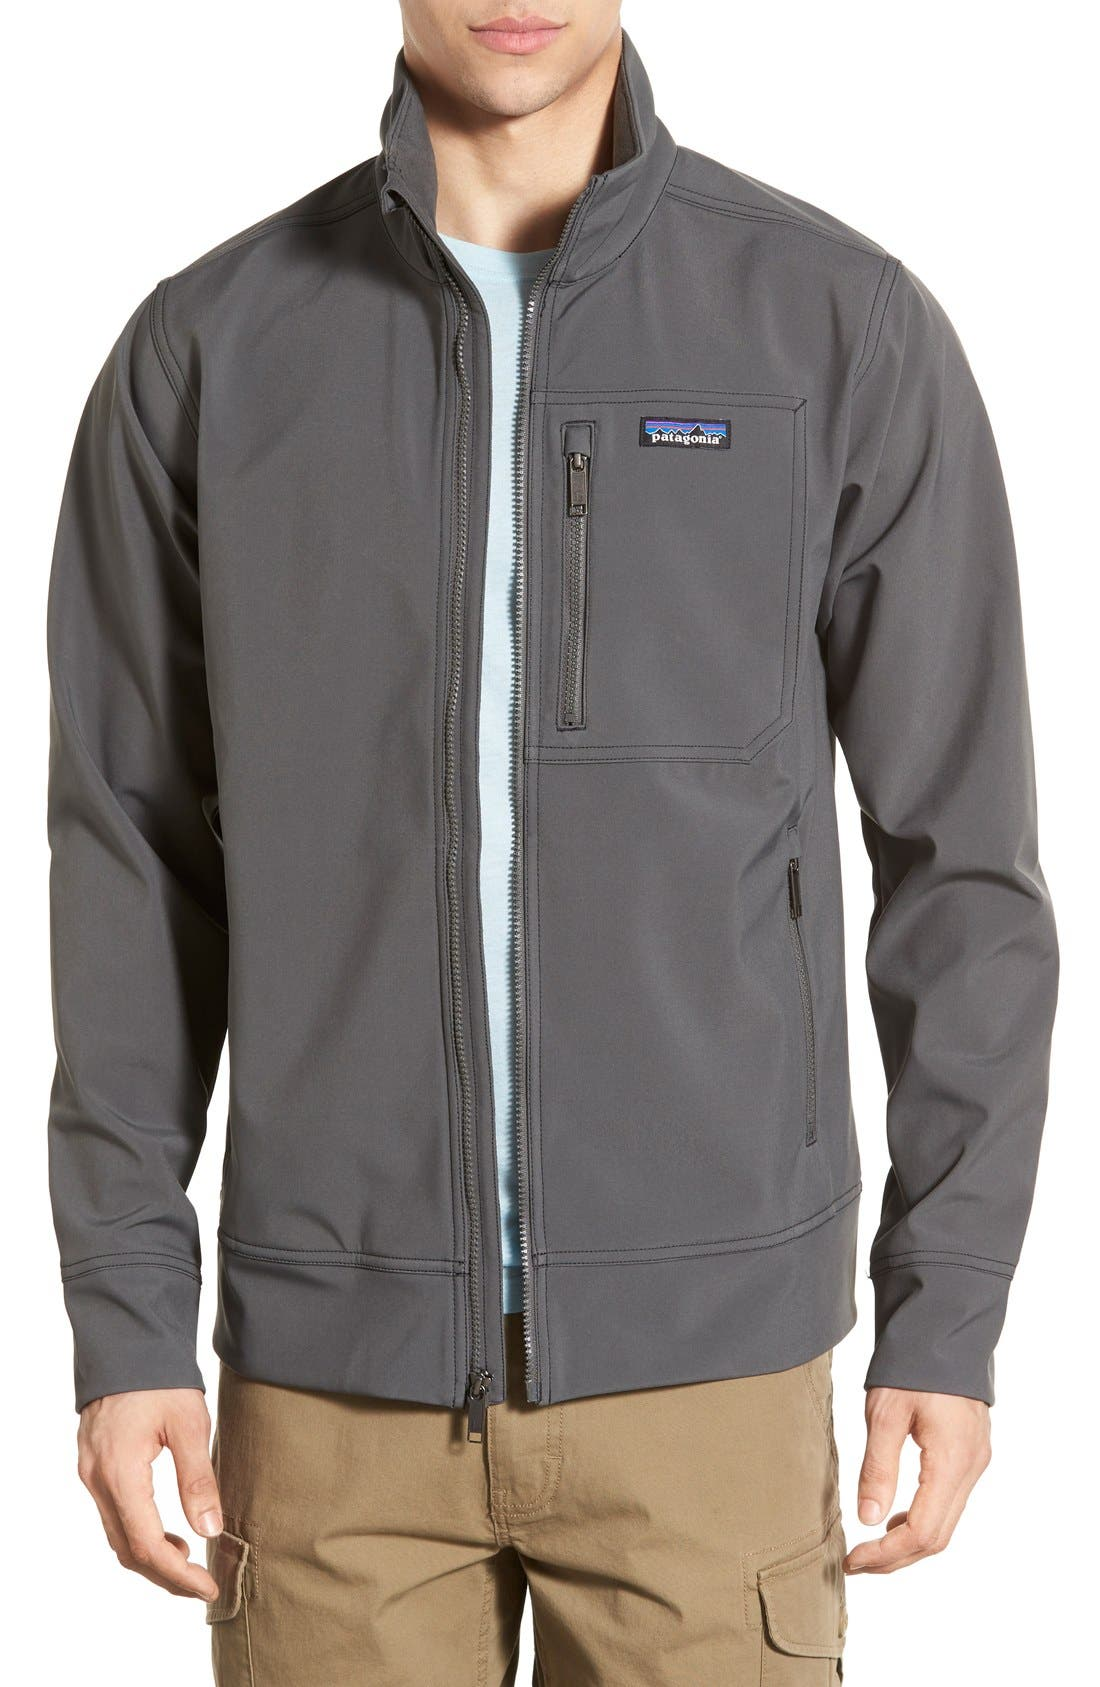 Patagonia 'Sidesend' Regular Fit Water Repellent Jacket